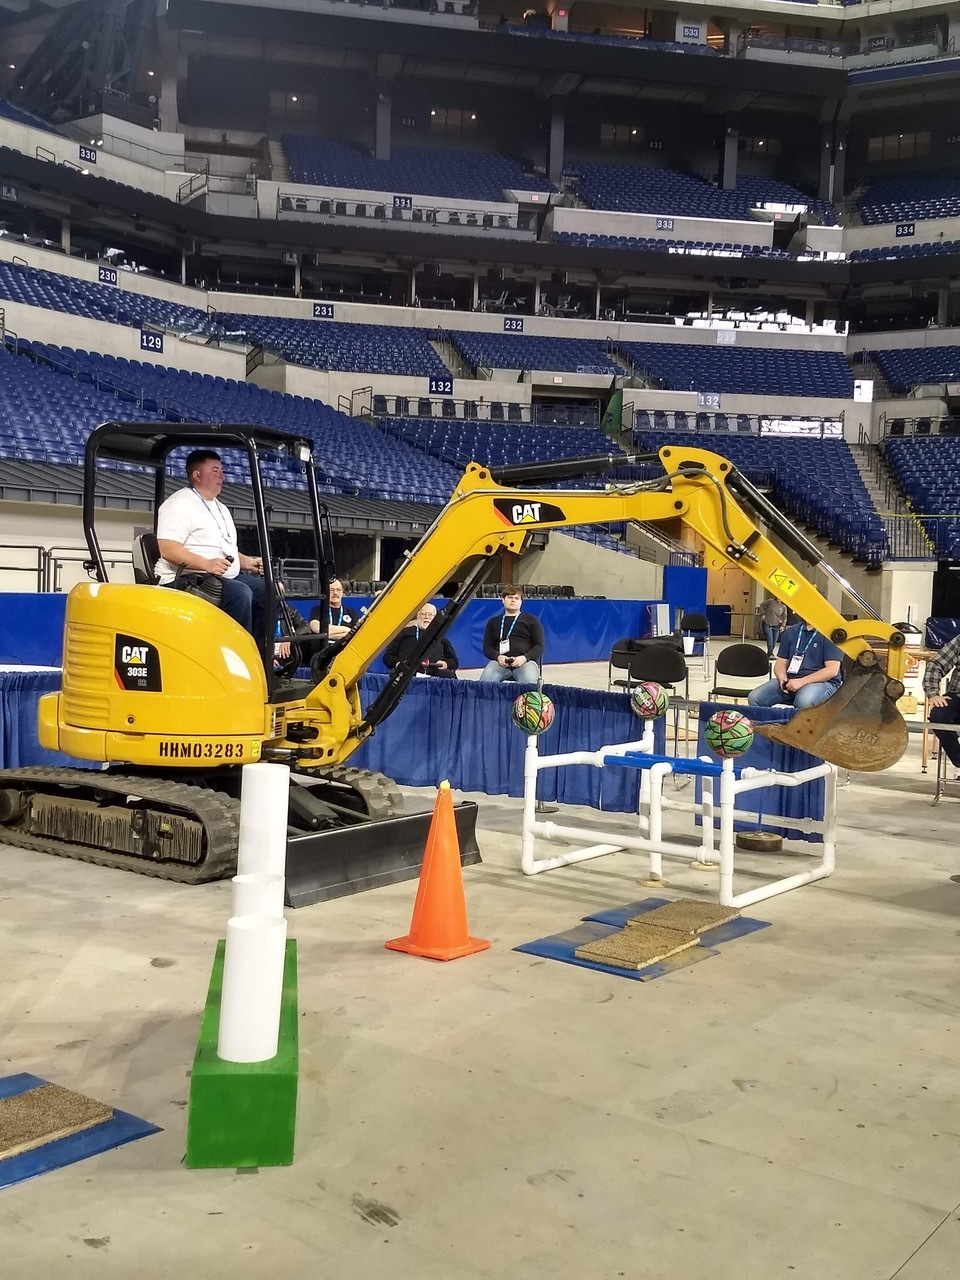 First-place winner John Moore is shown working on a Caterpillar mini-excavator at Lucas Oil Stadium.